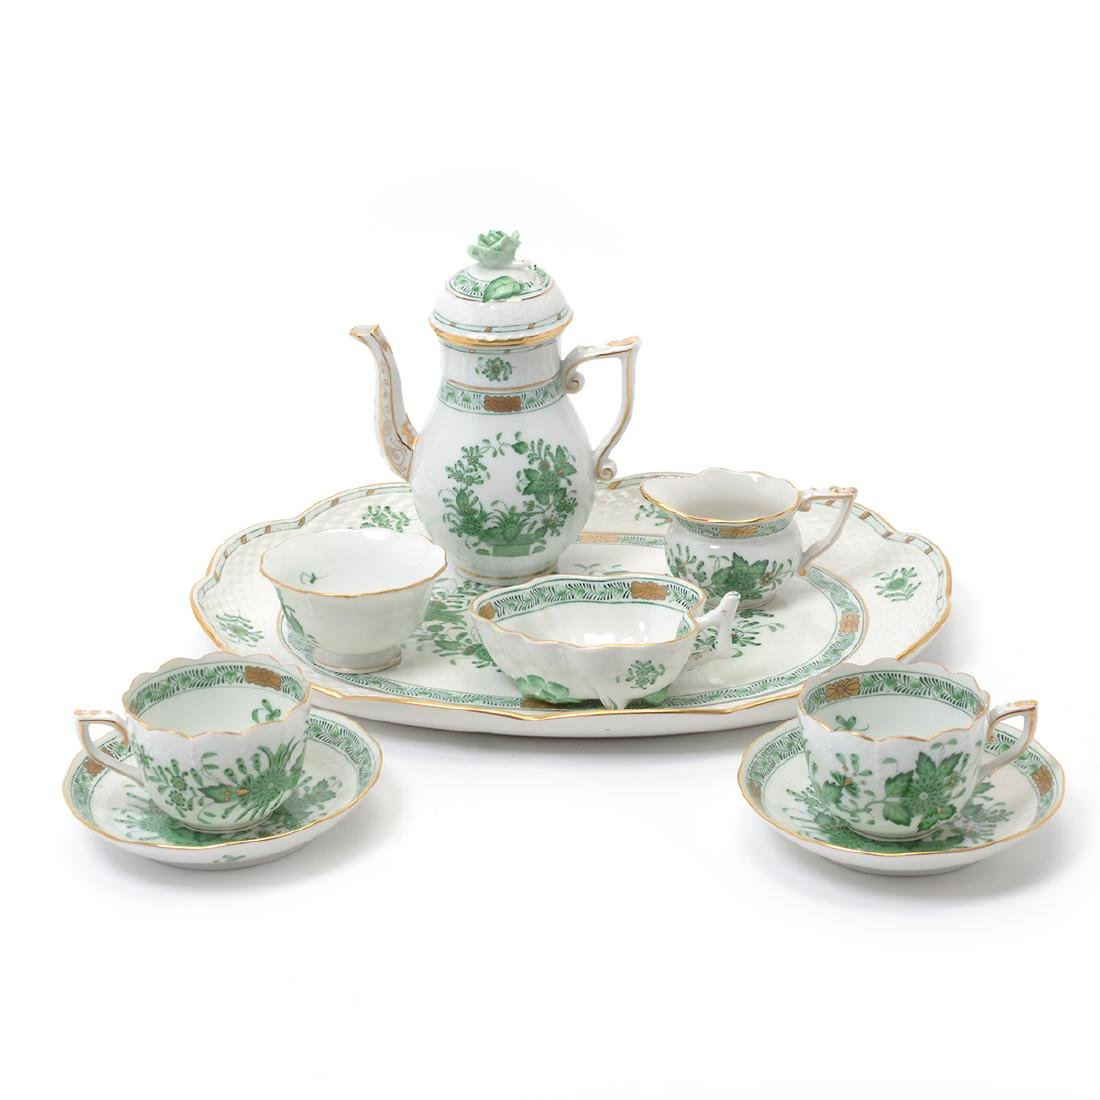 Herend Tobacco Leaf Porcelain Eight Piece Tea Service.